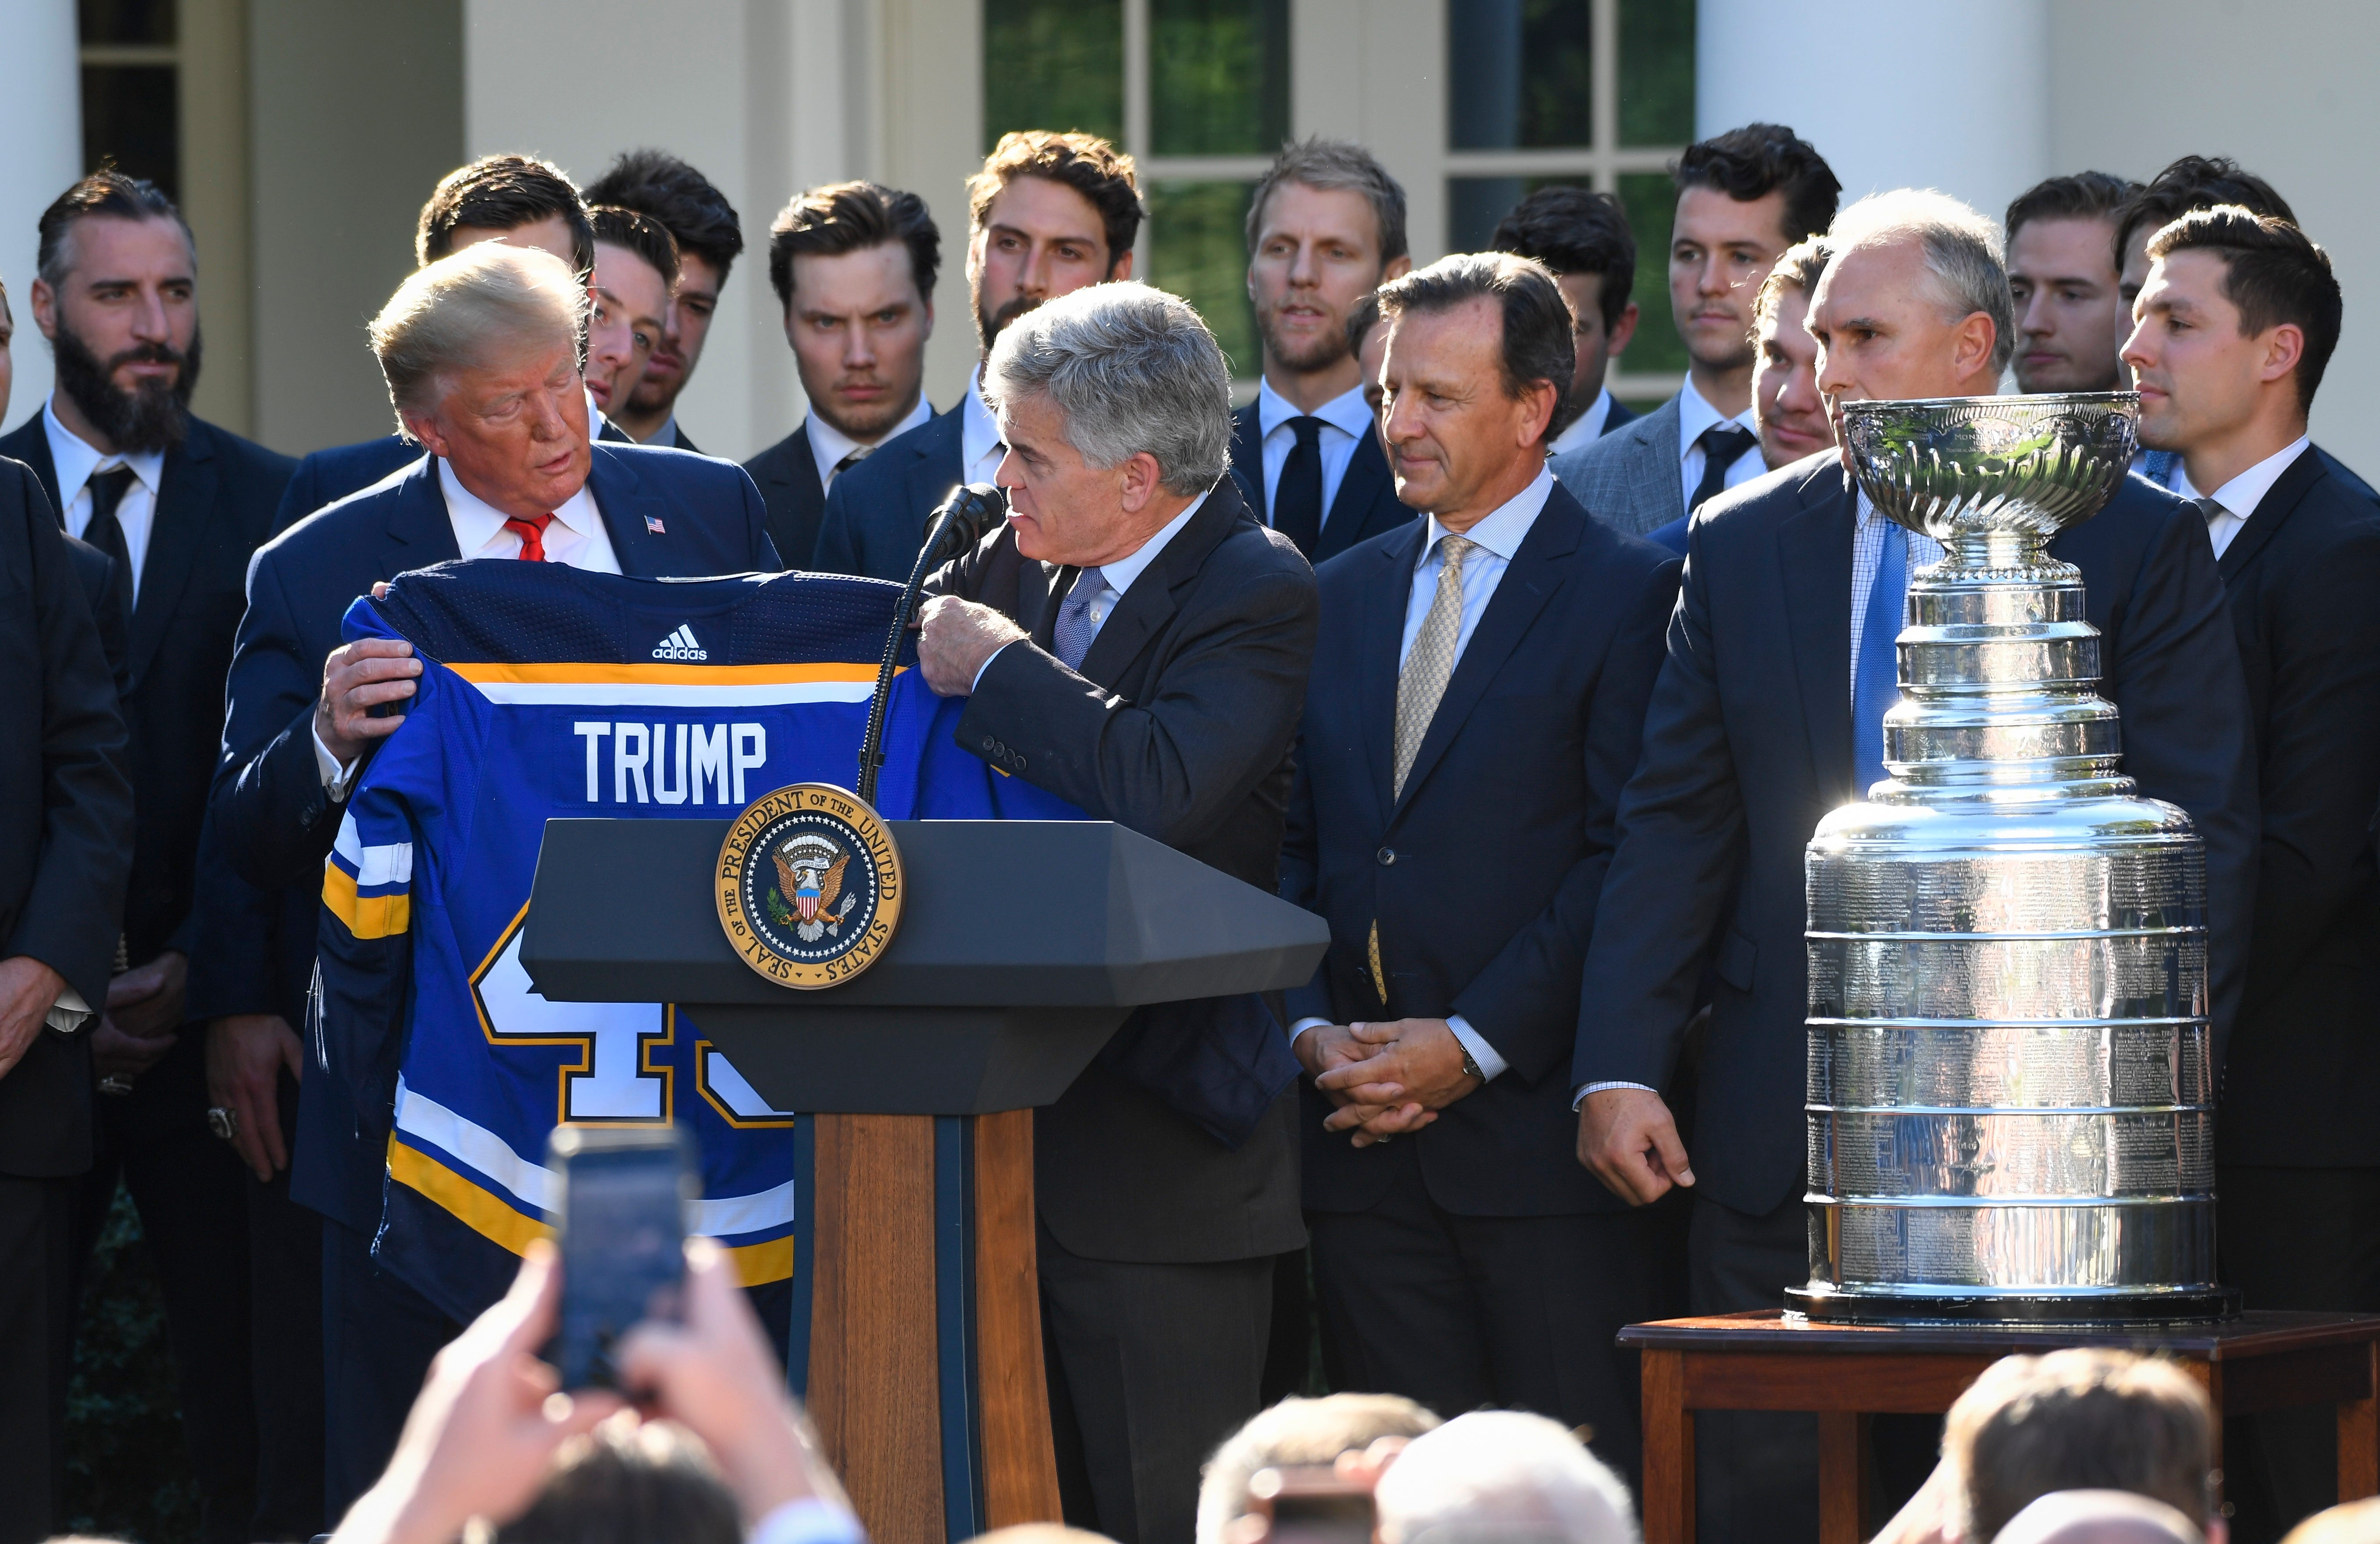 President Trump welcomes 2019 Stanley Cup Champions St. Louis Blues to the White House